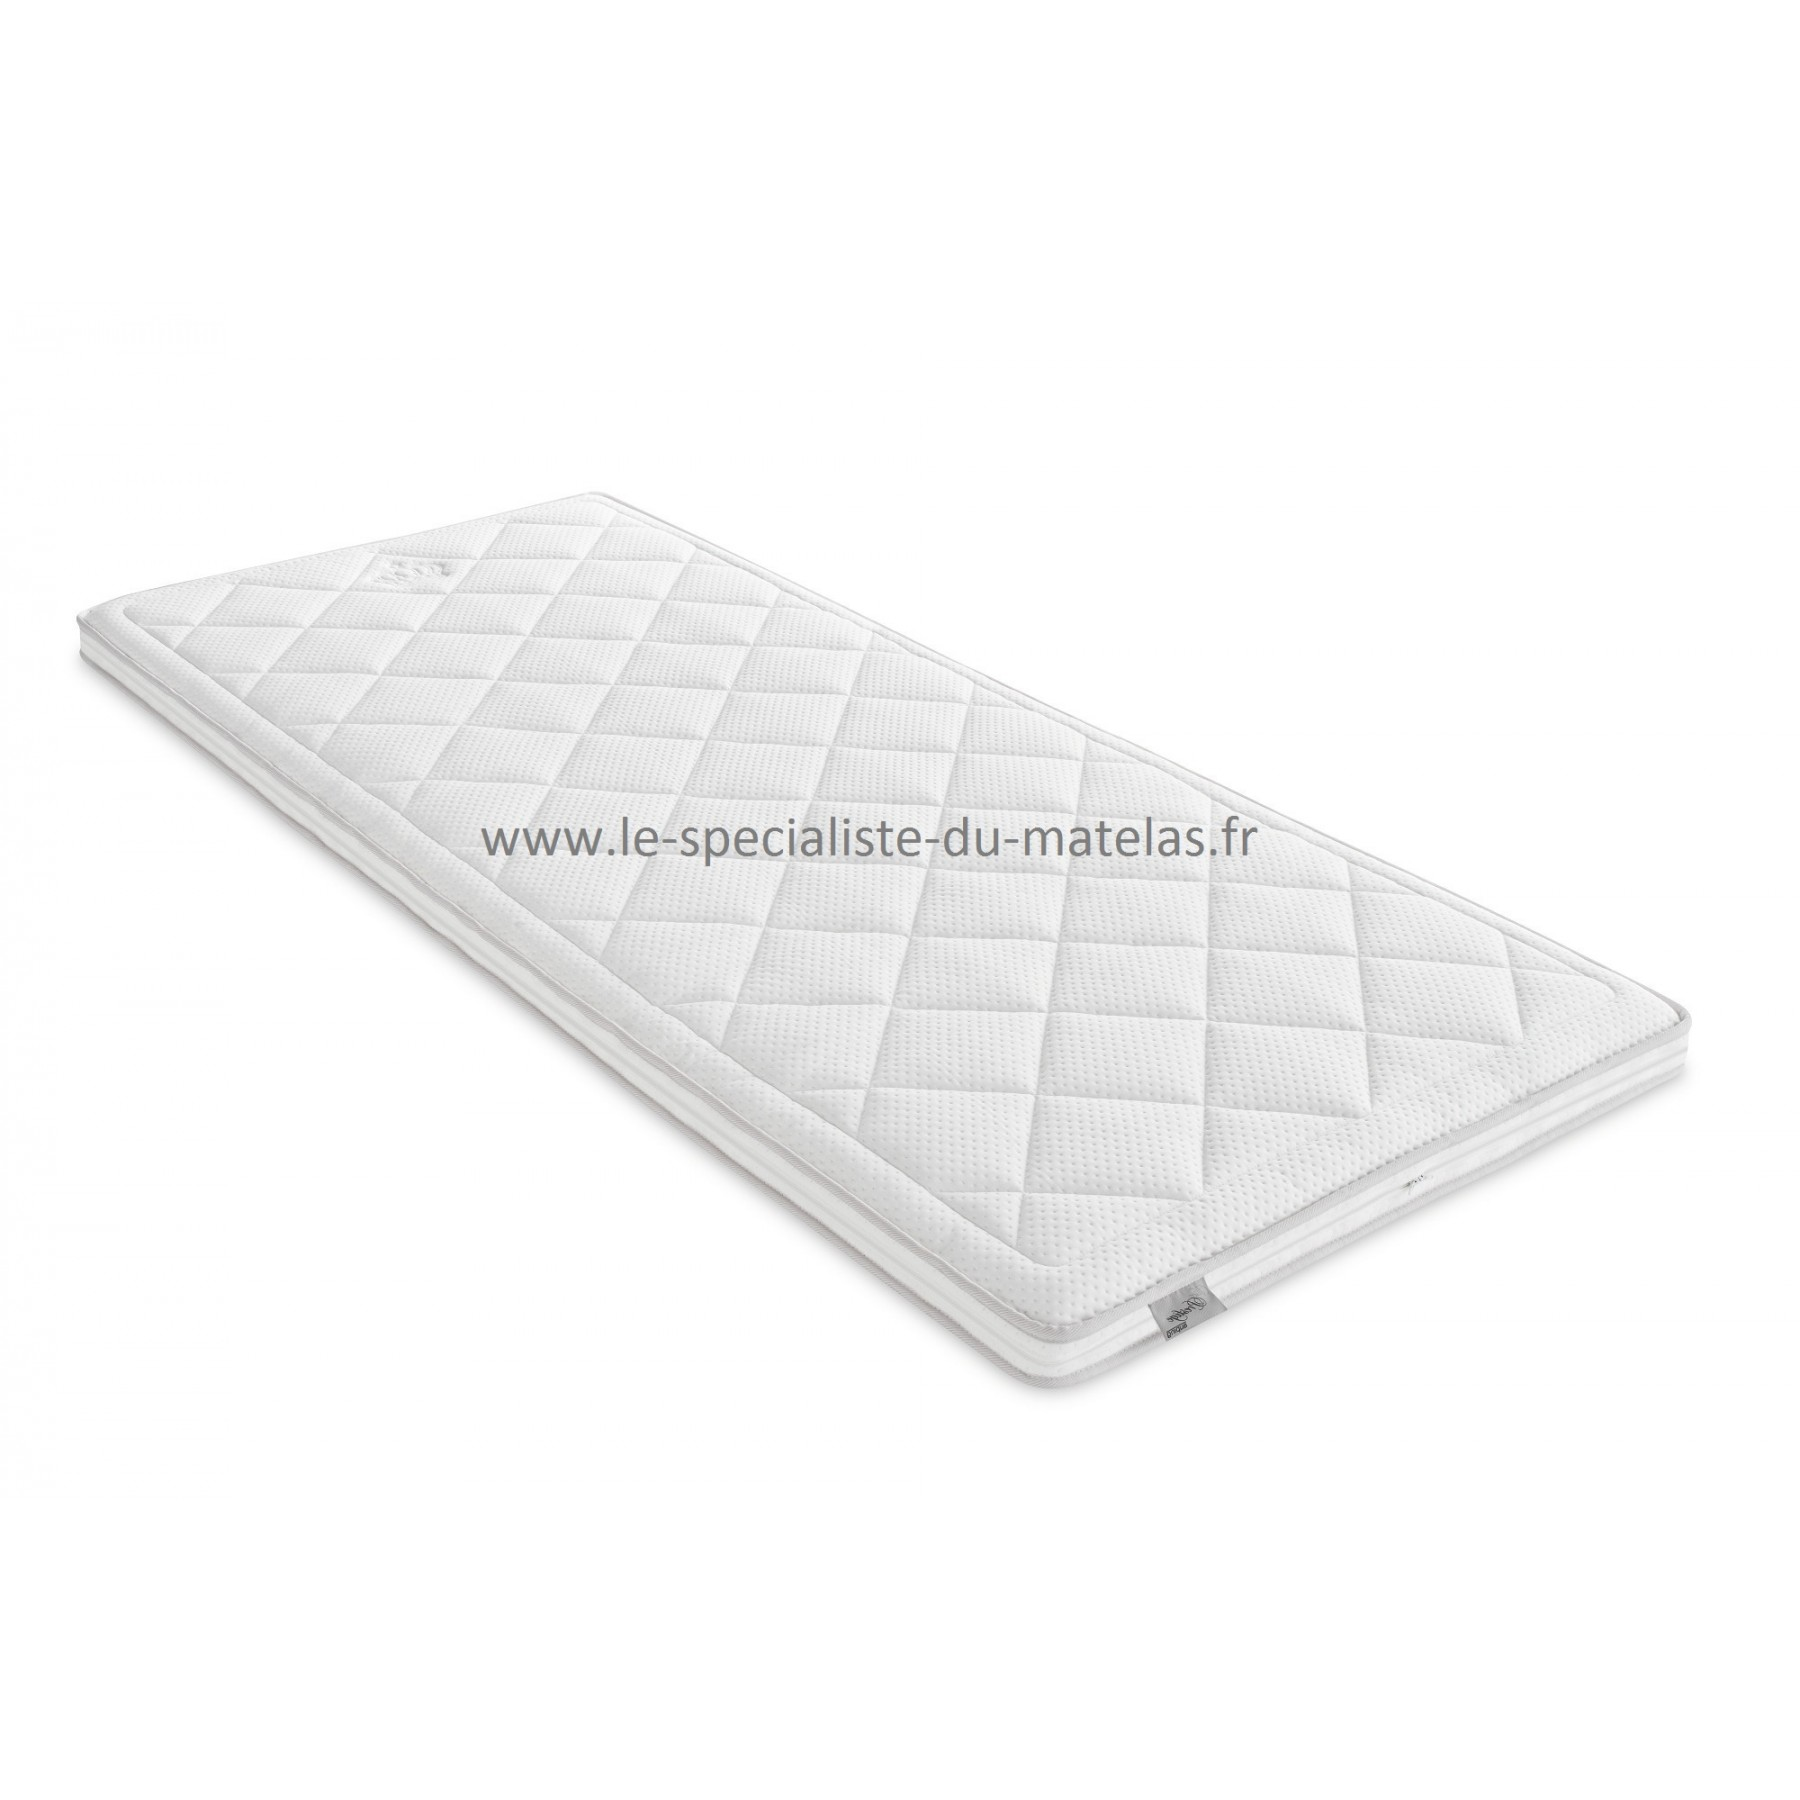 Surmatelas Auping Prestige Visco En Mousse Visco Lastique